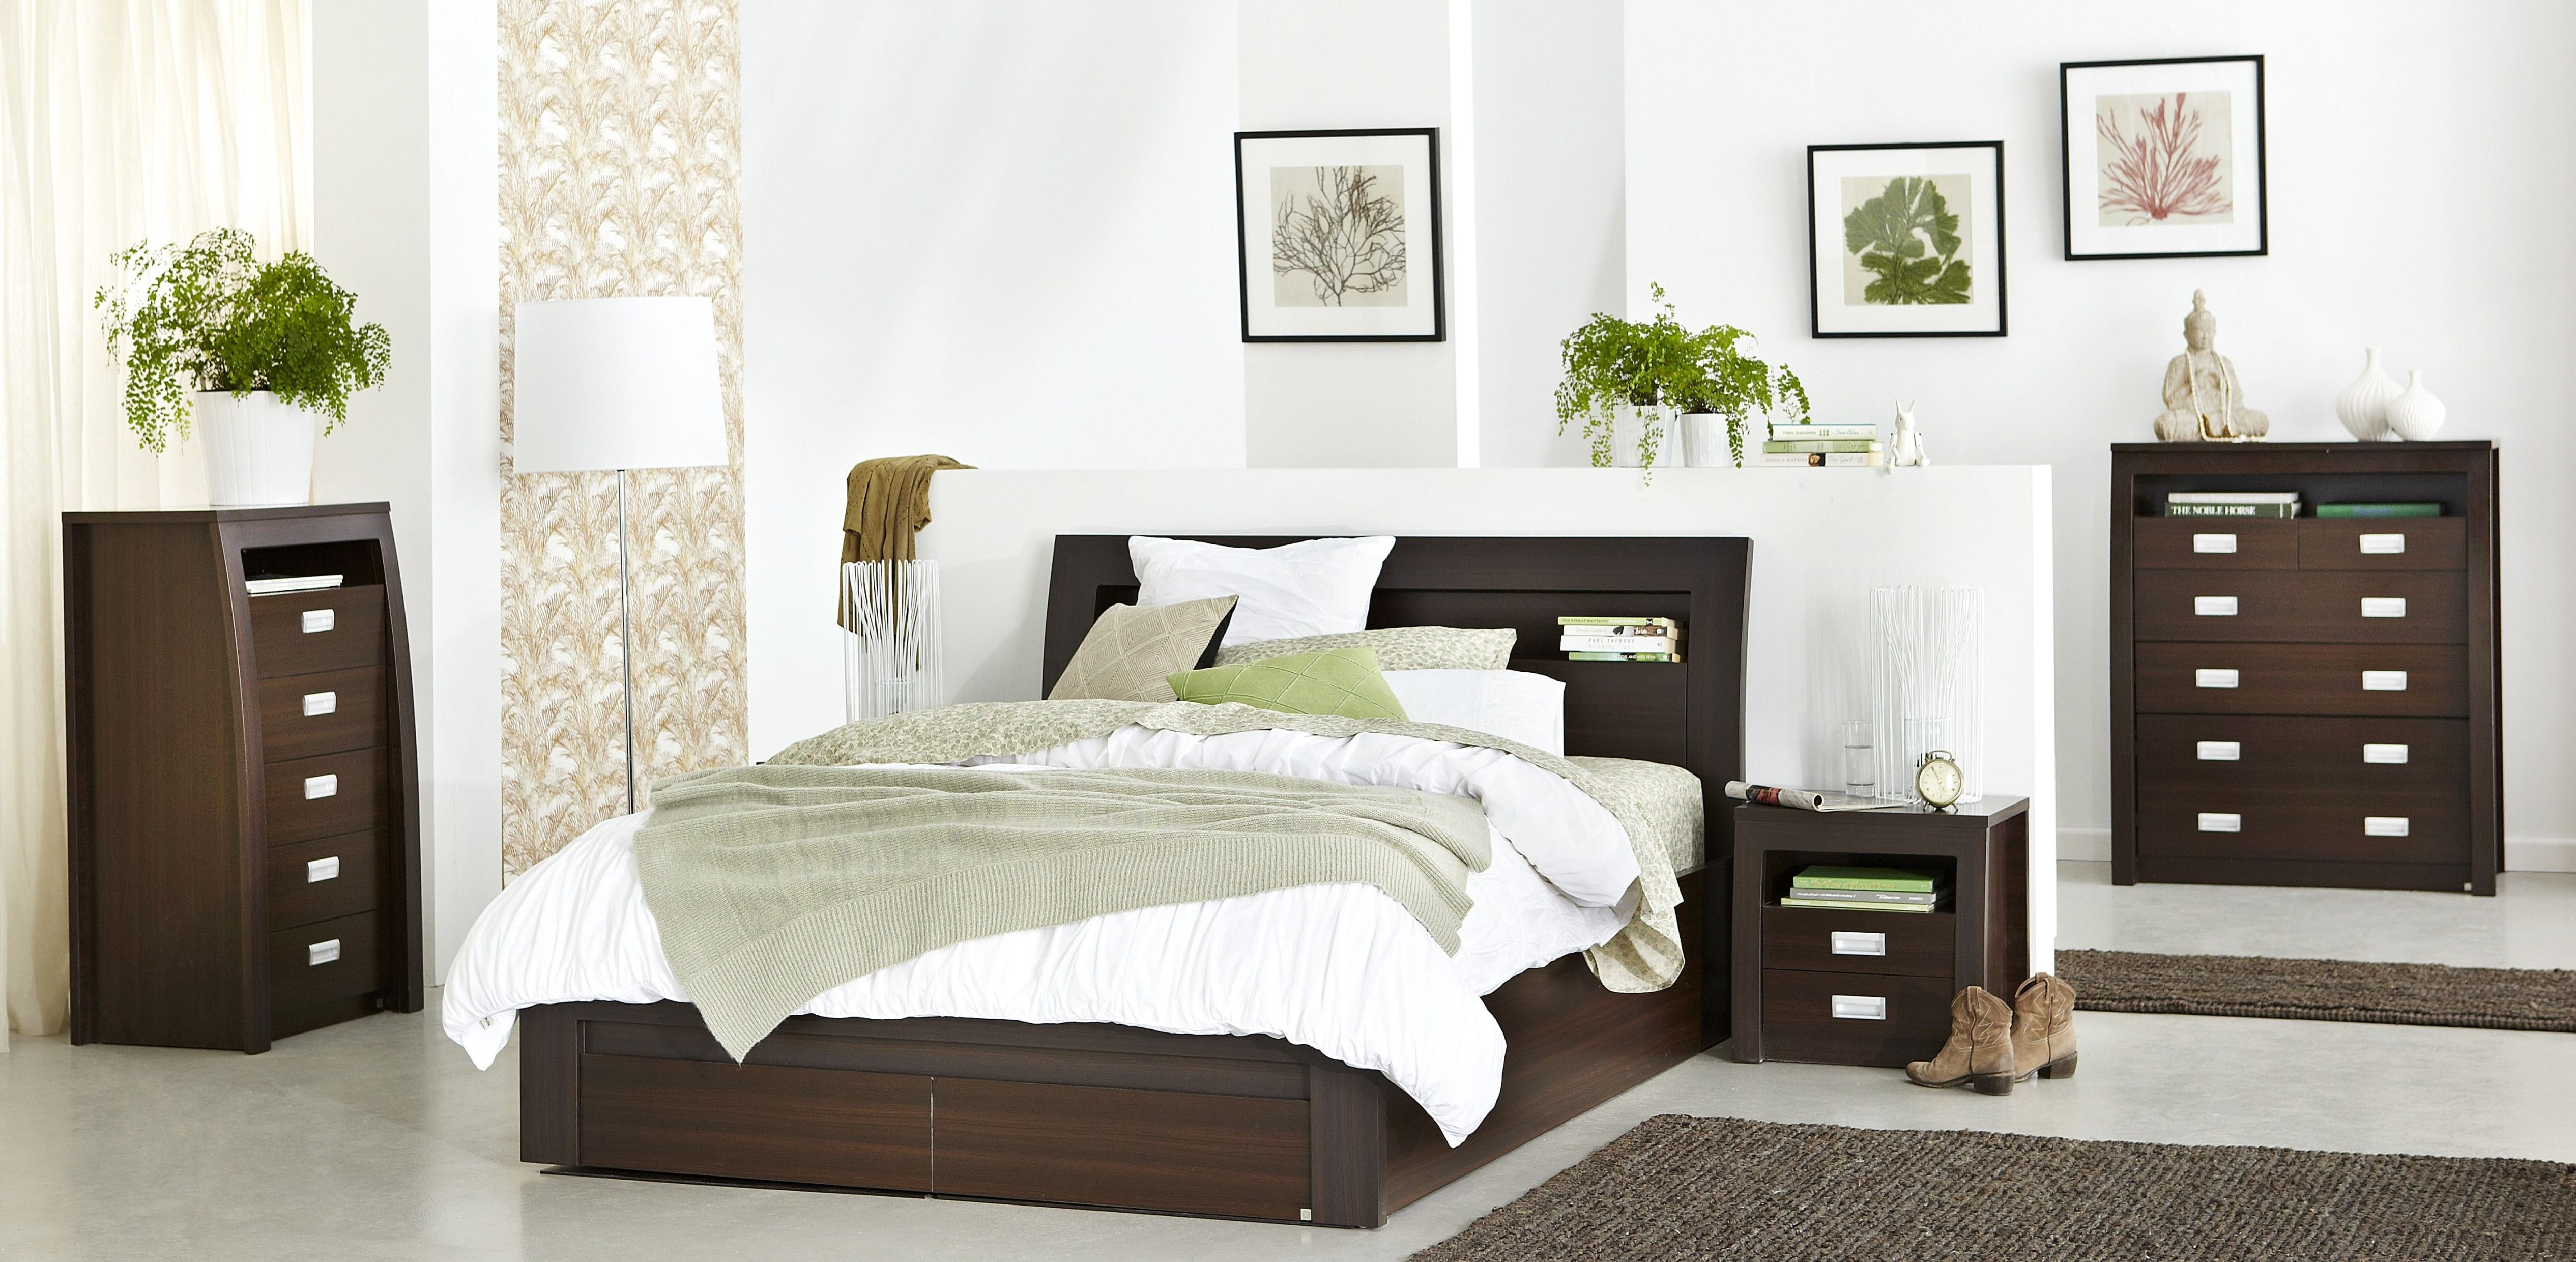 Metropolis bedroom furniture function style and grace for Bedroom furniture storage solutions